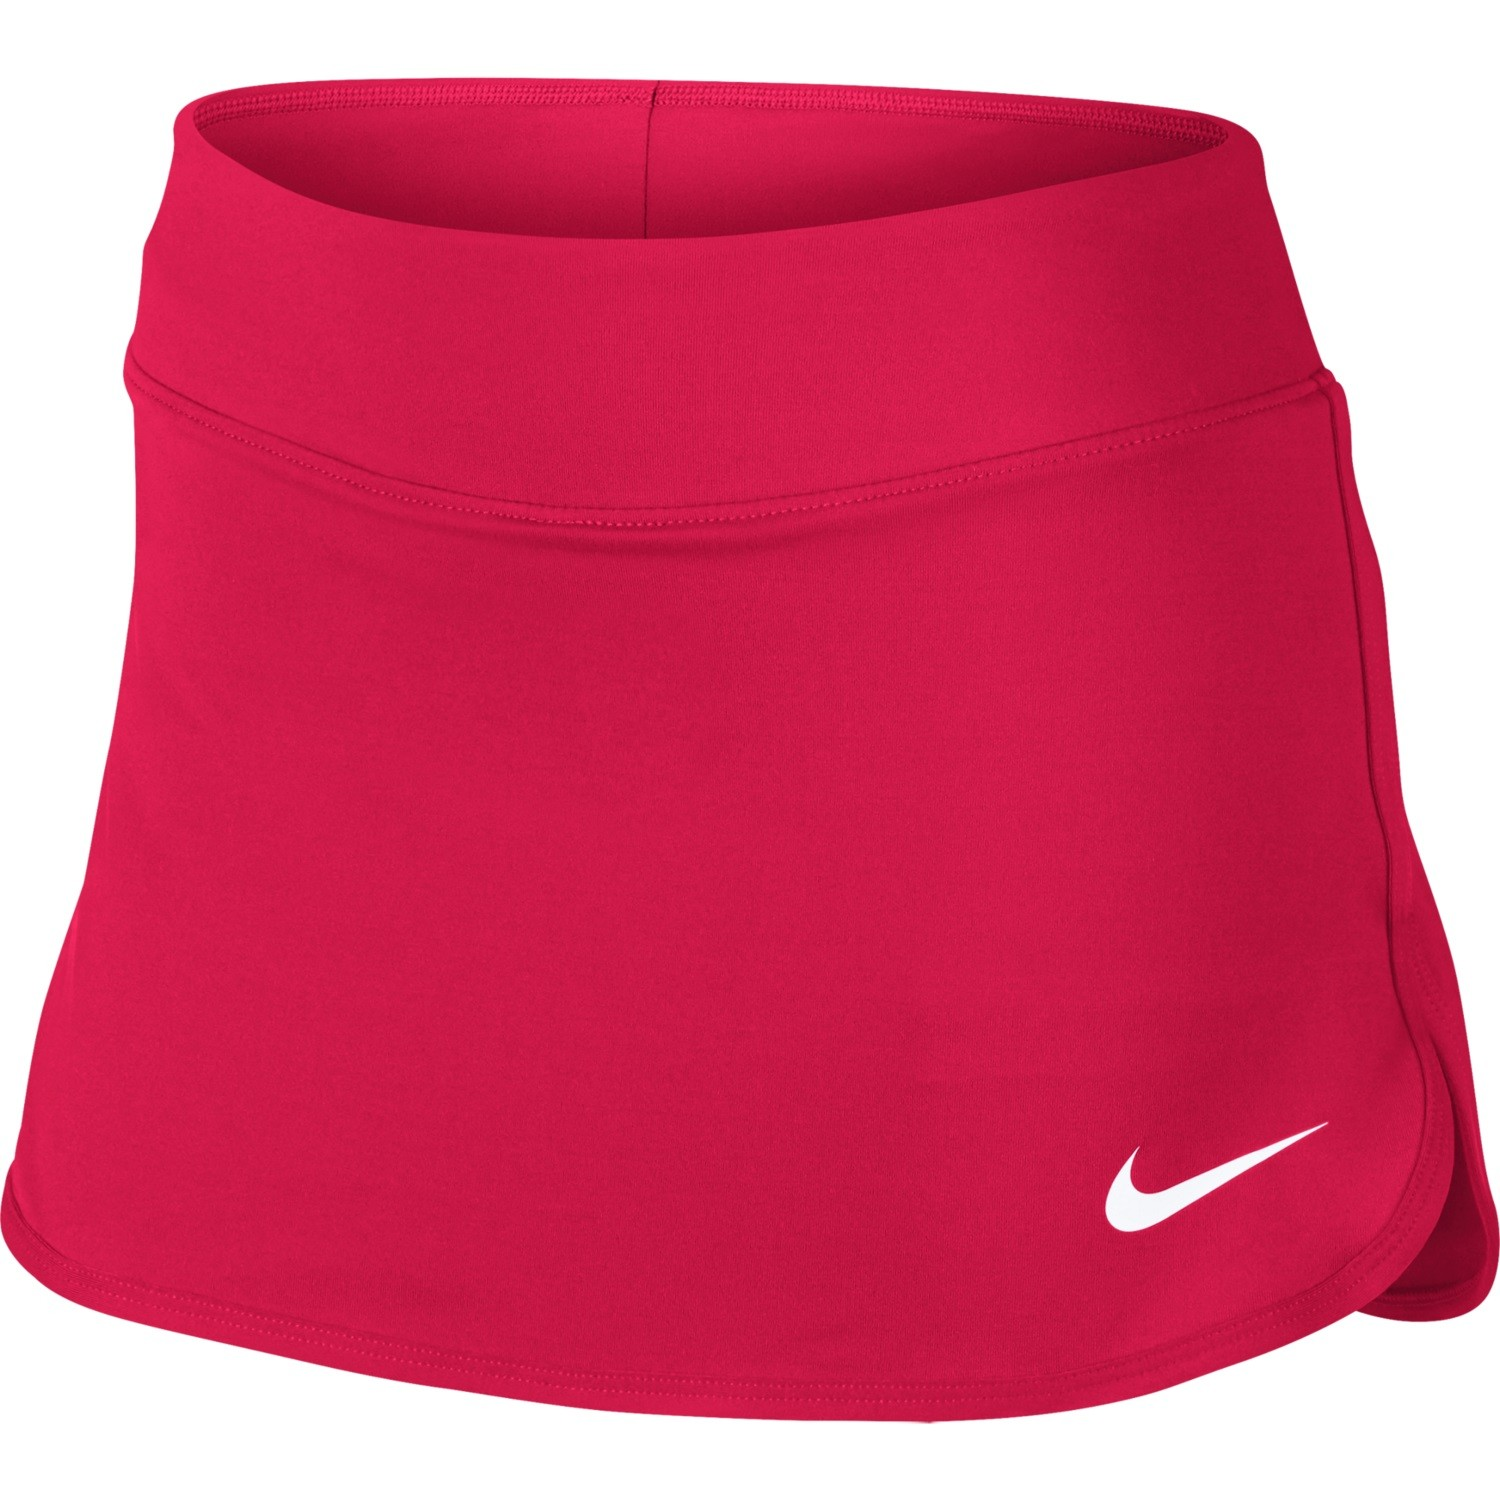 cheapest price great fit cheap sale Tennisrock Mädchen Nike Tennis Skirt | Tennislife.at